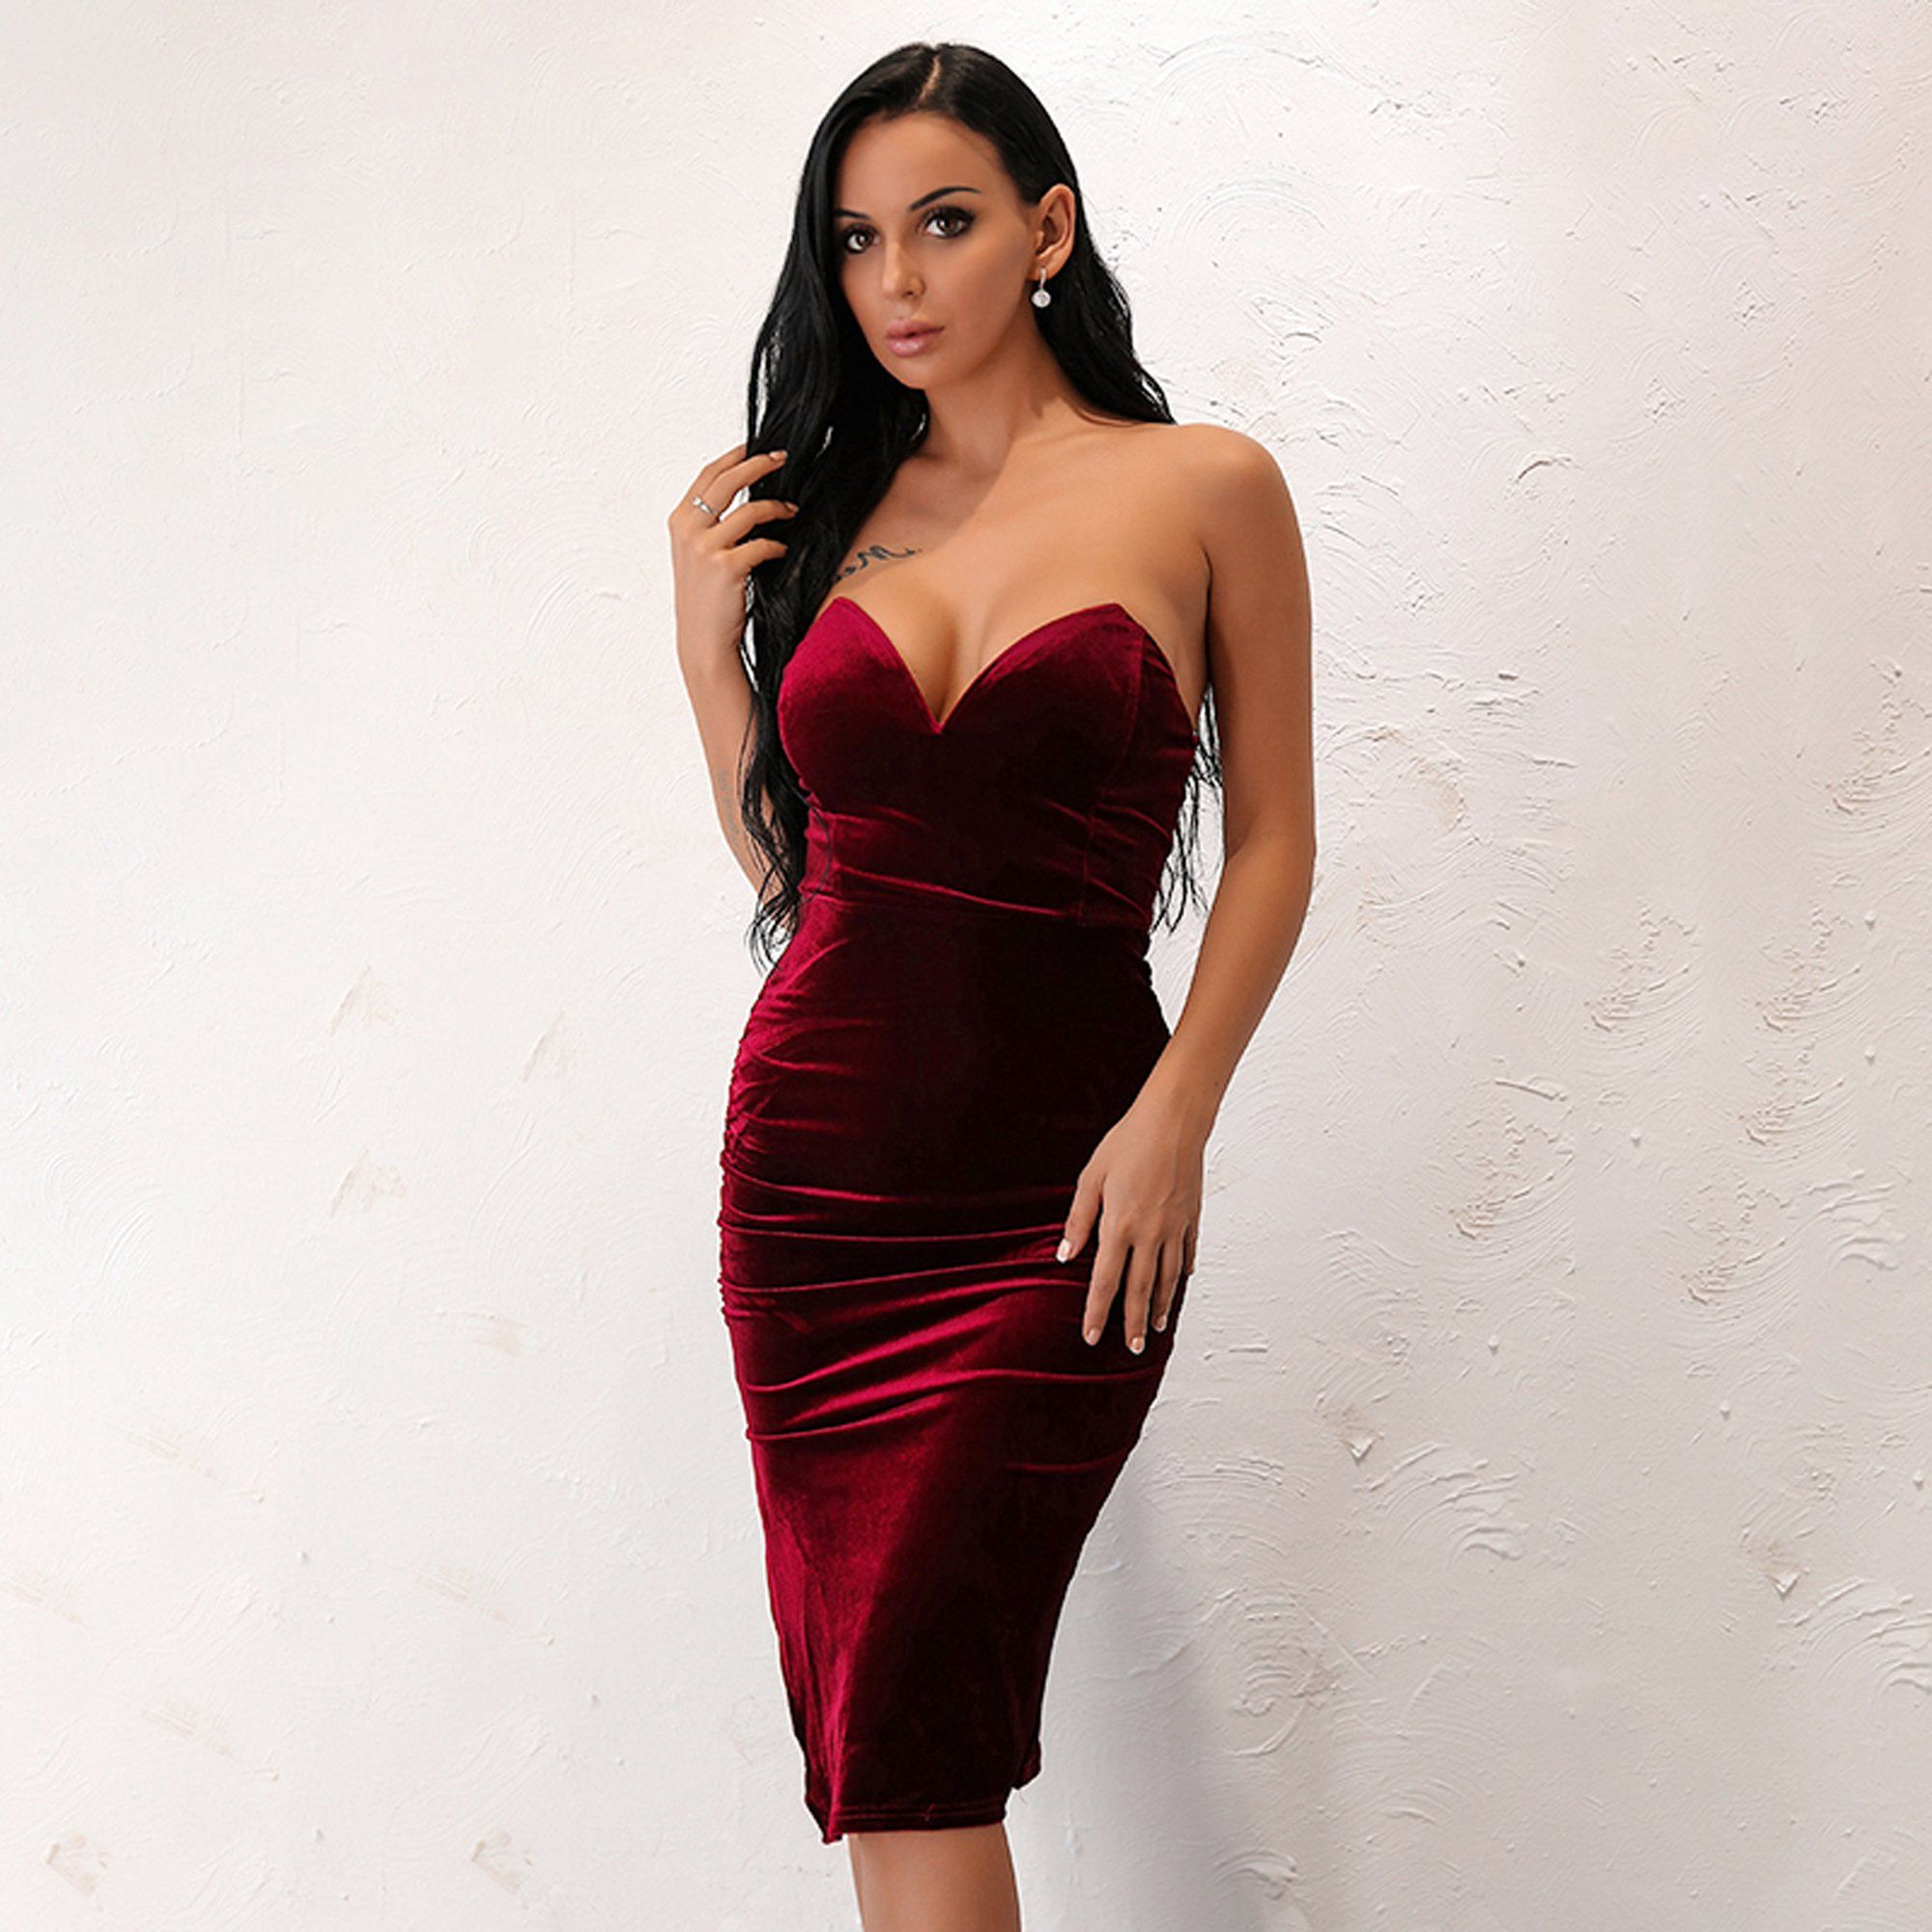 8bbf8b12a4 PRODUCT DETAILS - Midi dress - Fitted - Side slit - Strapless - Velvet